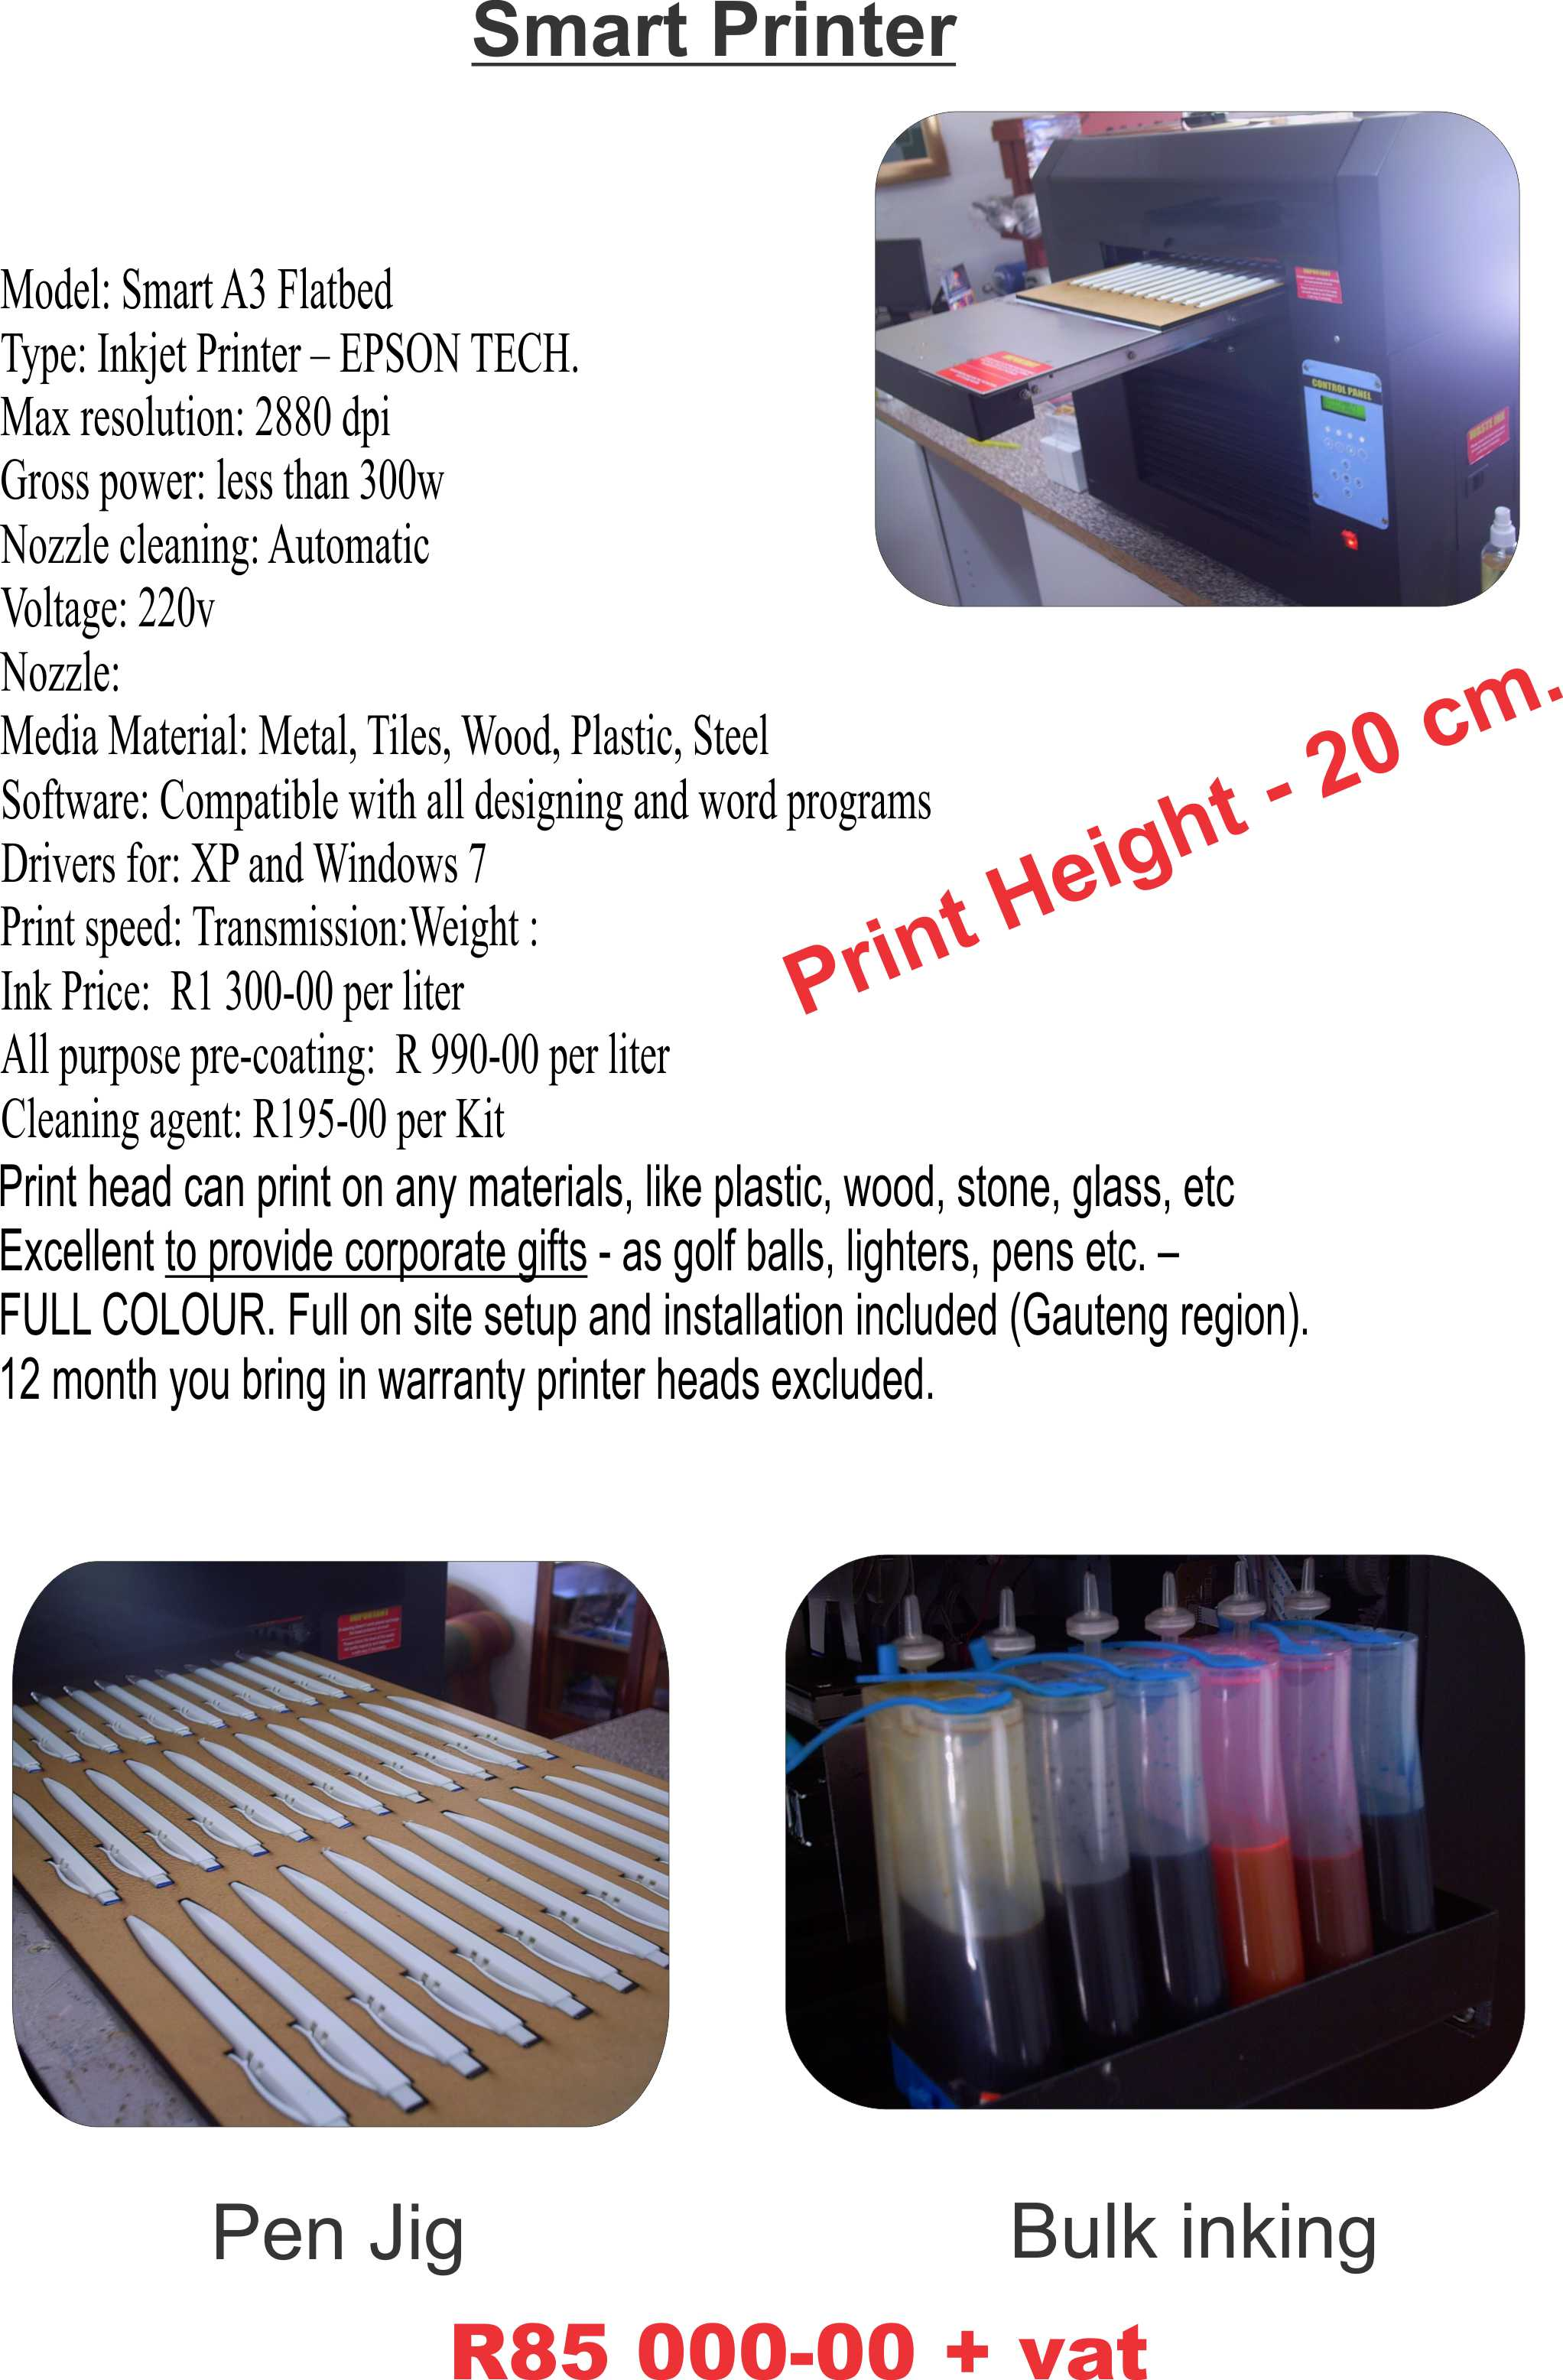 Printing business wrehouse start your own corporate gift printing business this all purpose printer can print on pen lighters golf balls tiles painter canvas cds and dvds reheart Images